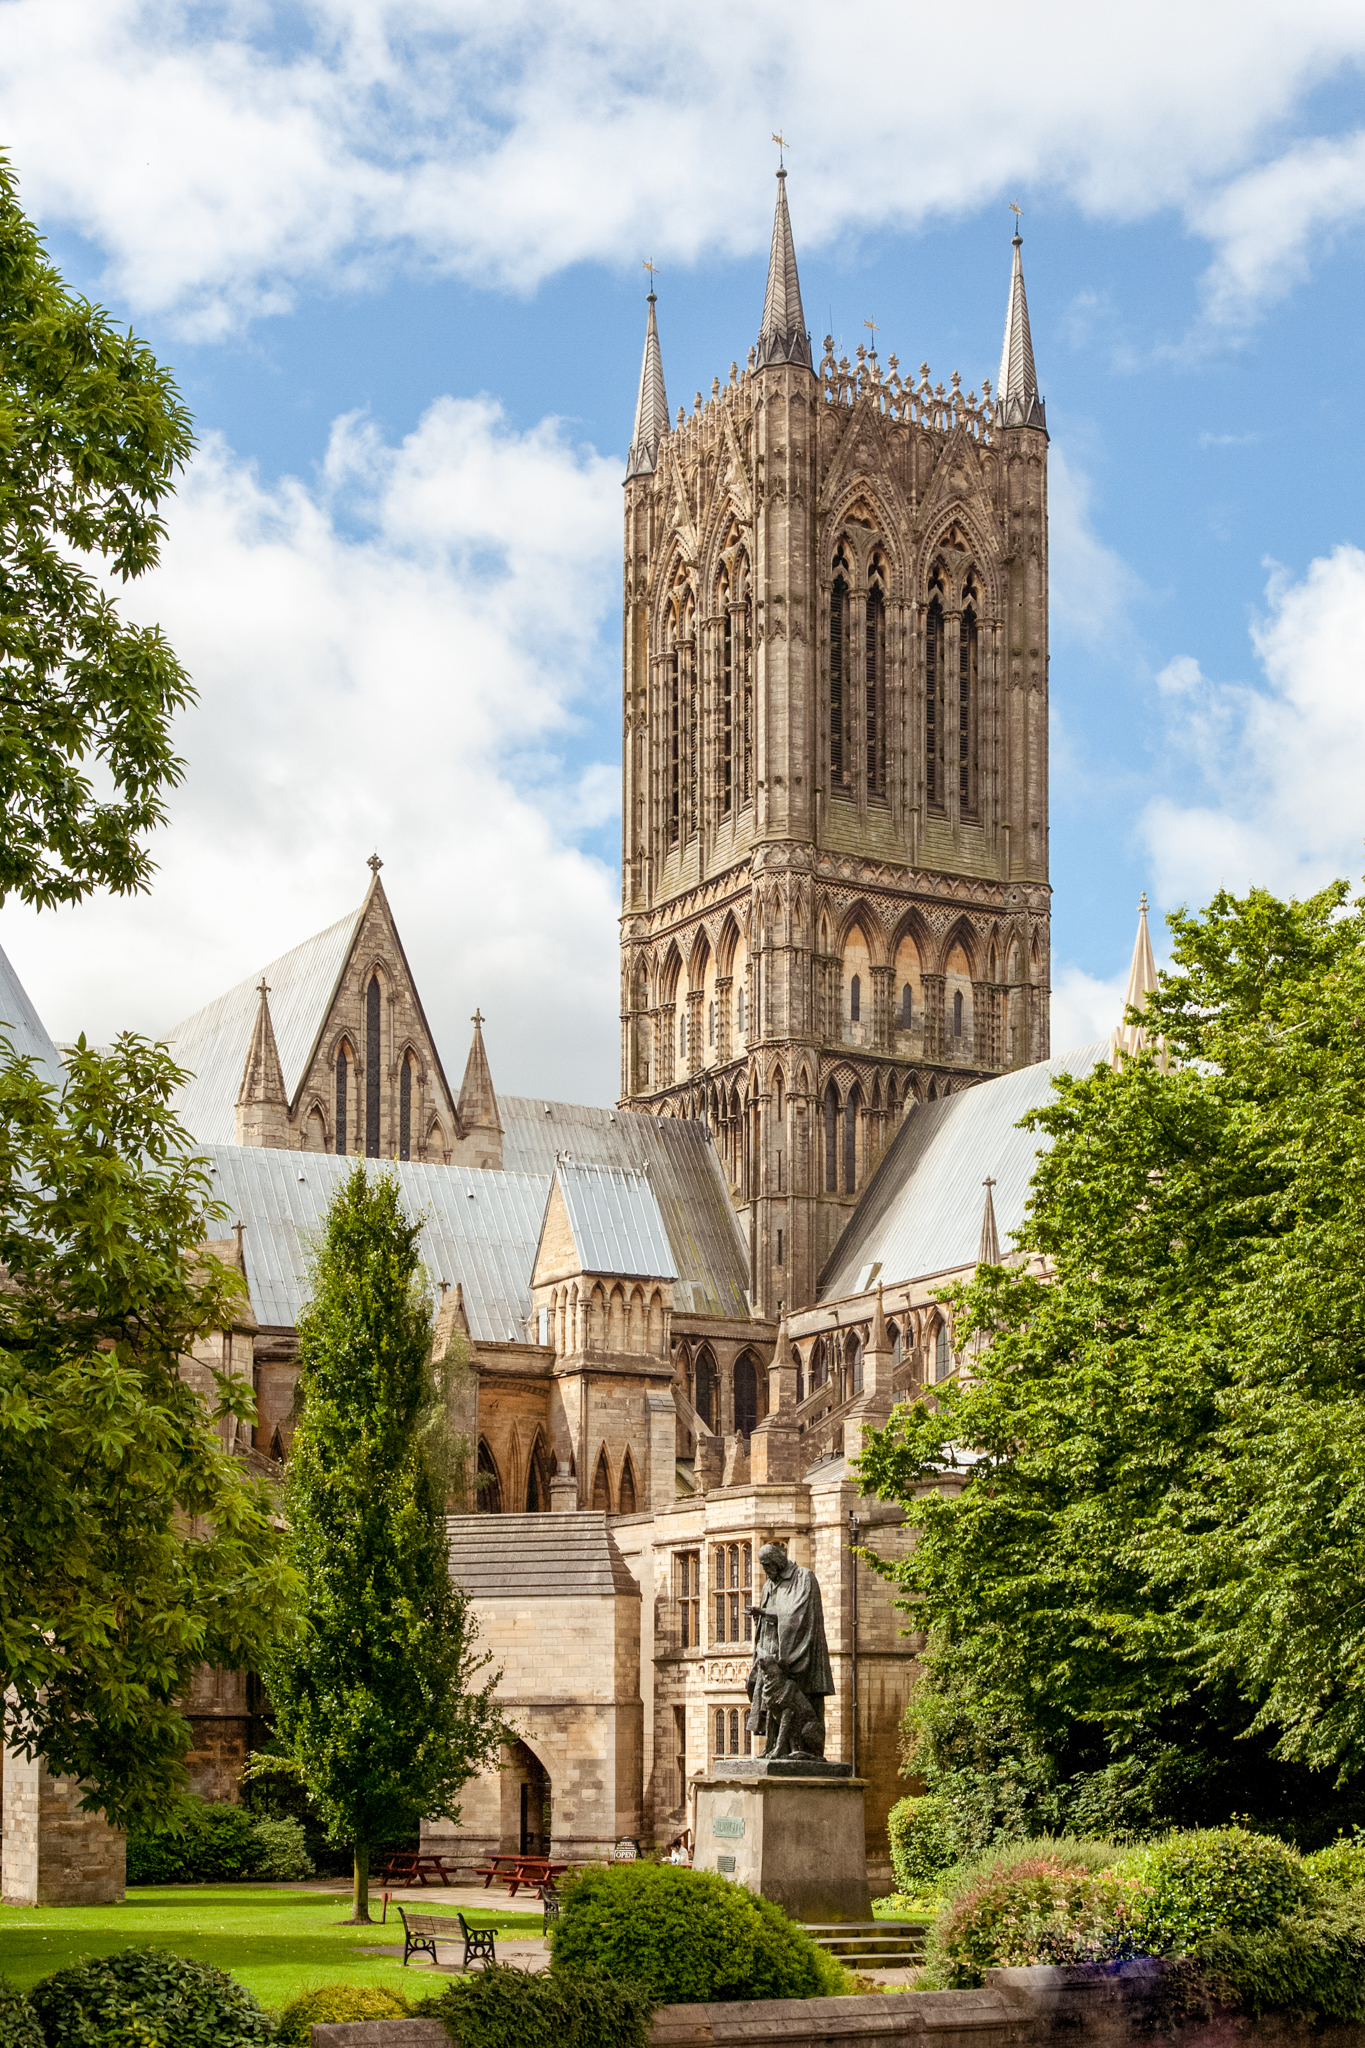 This is a view of one of the main towers of Lincoln cathedral.